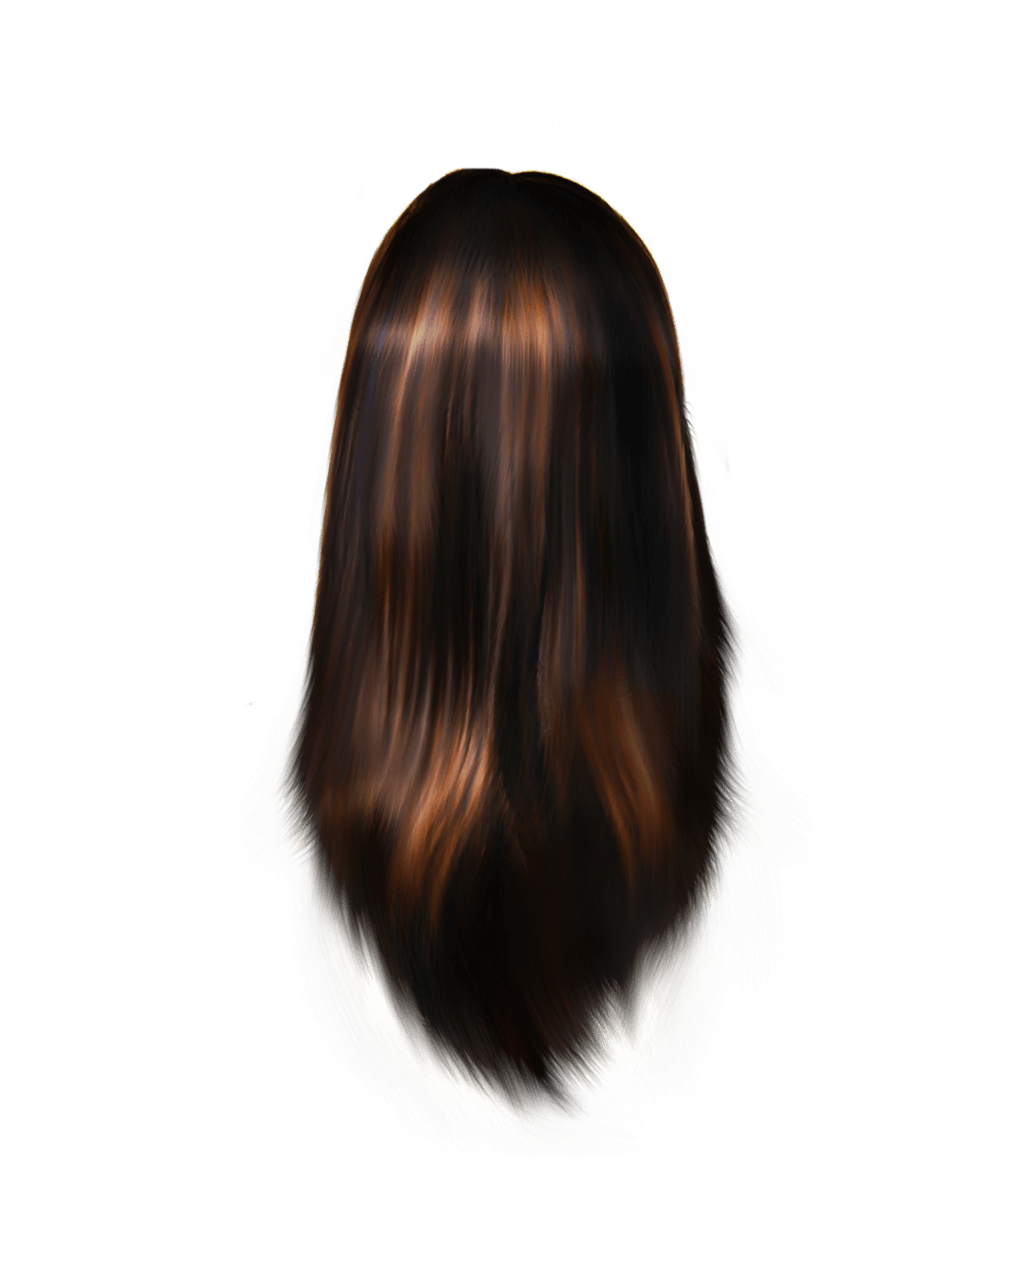 Girl Hairstyle Download Video: 42 Women Hair Png Image